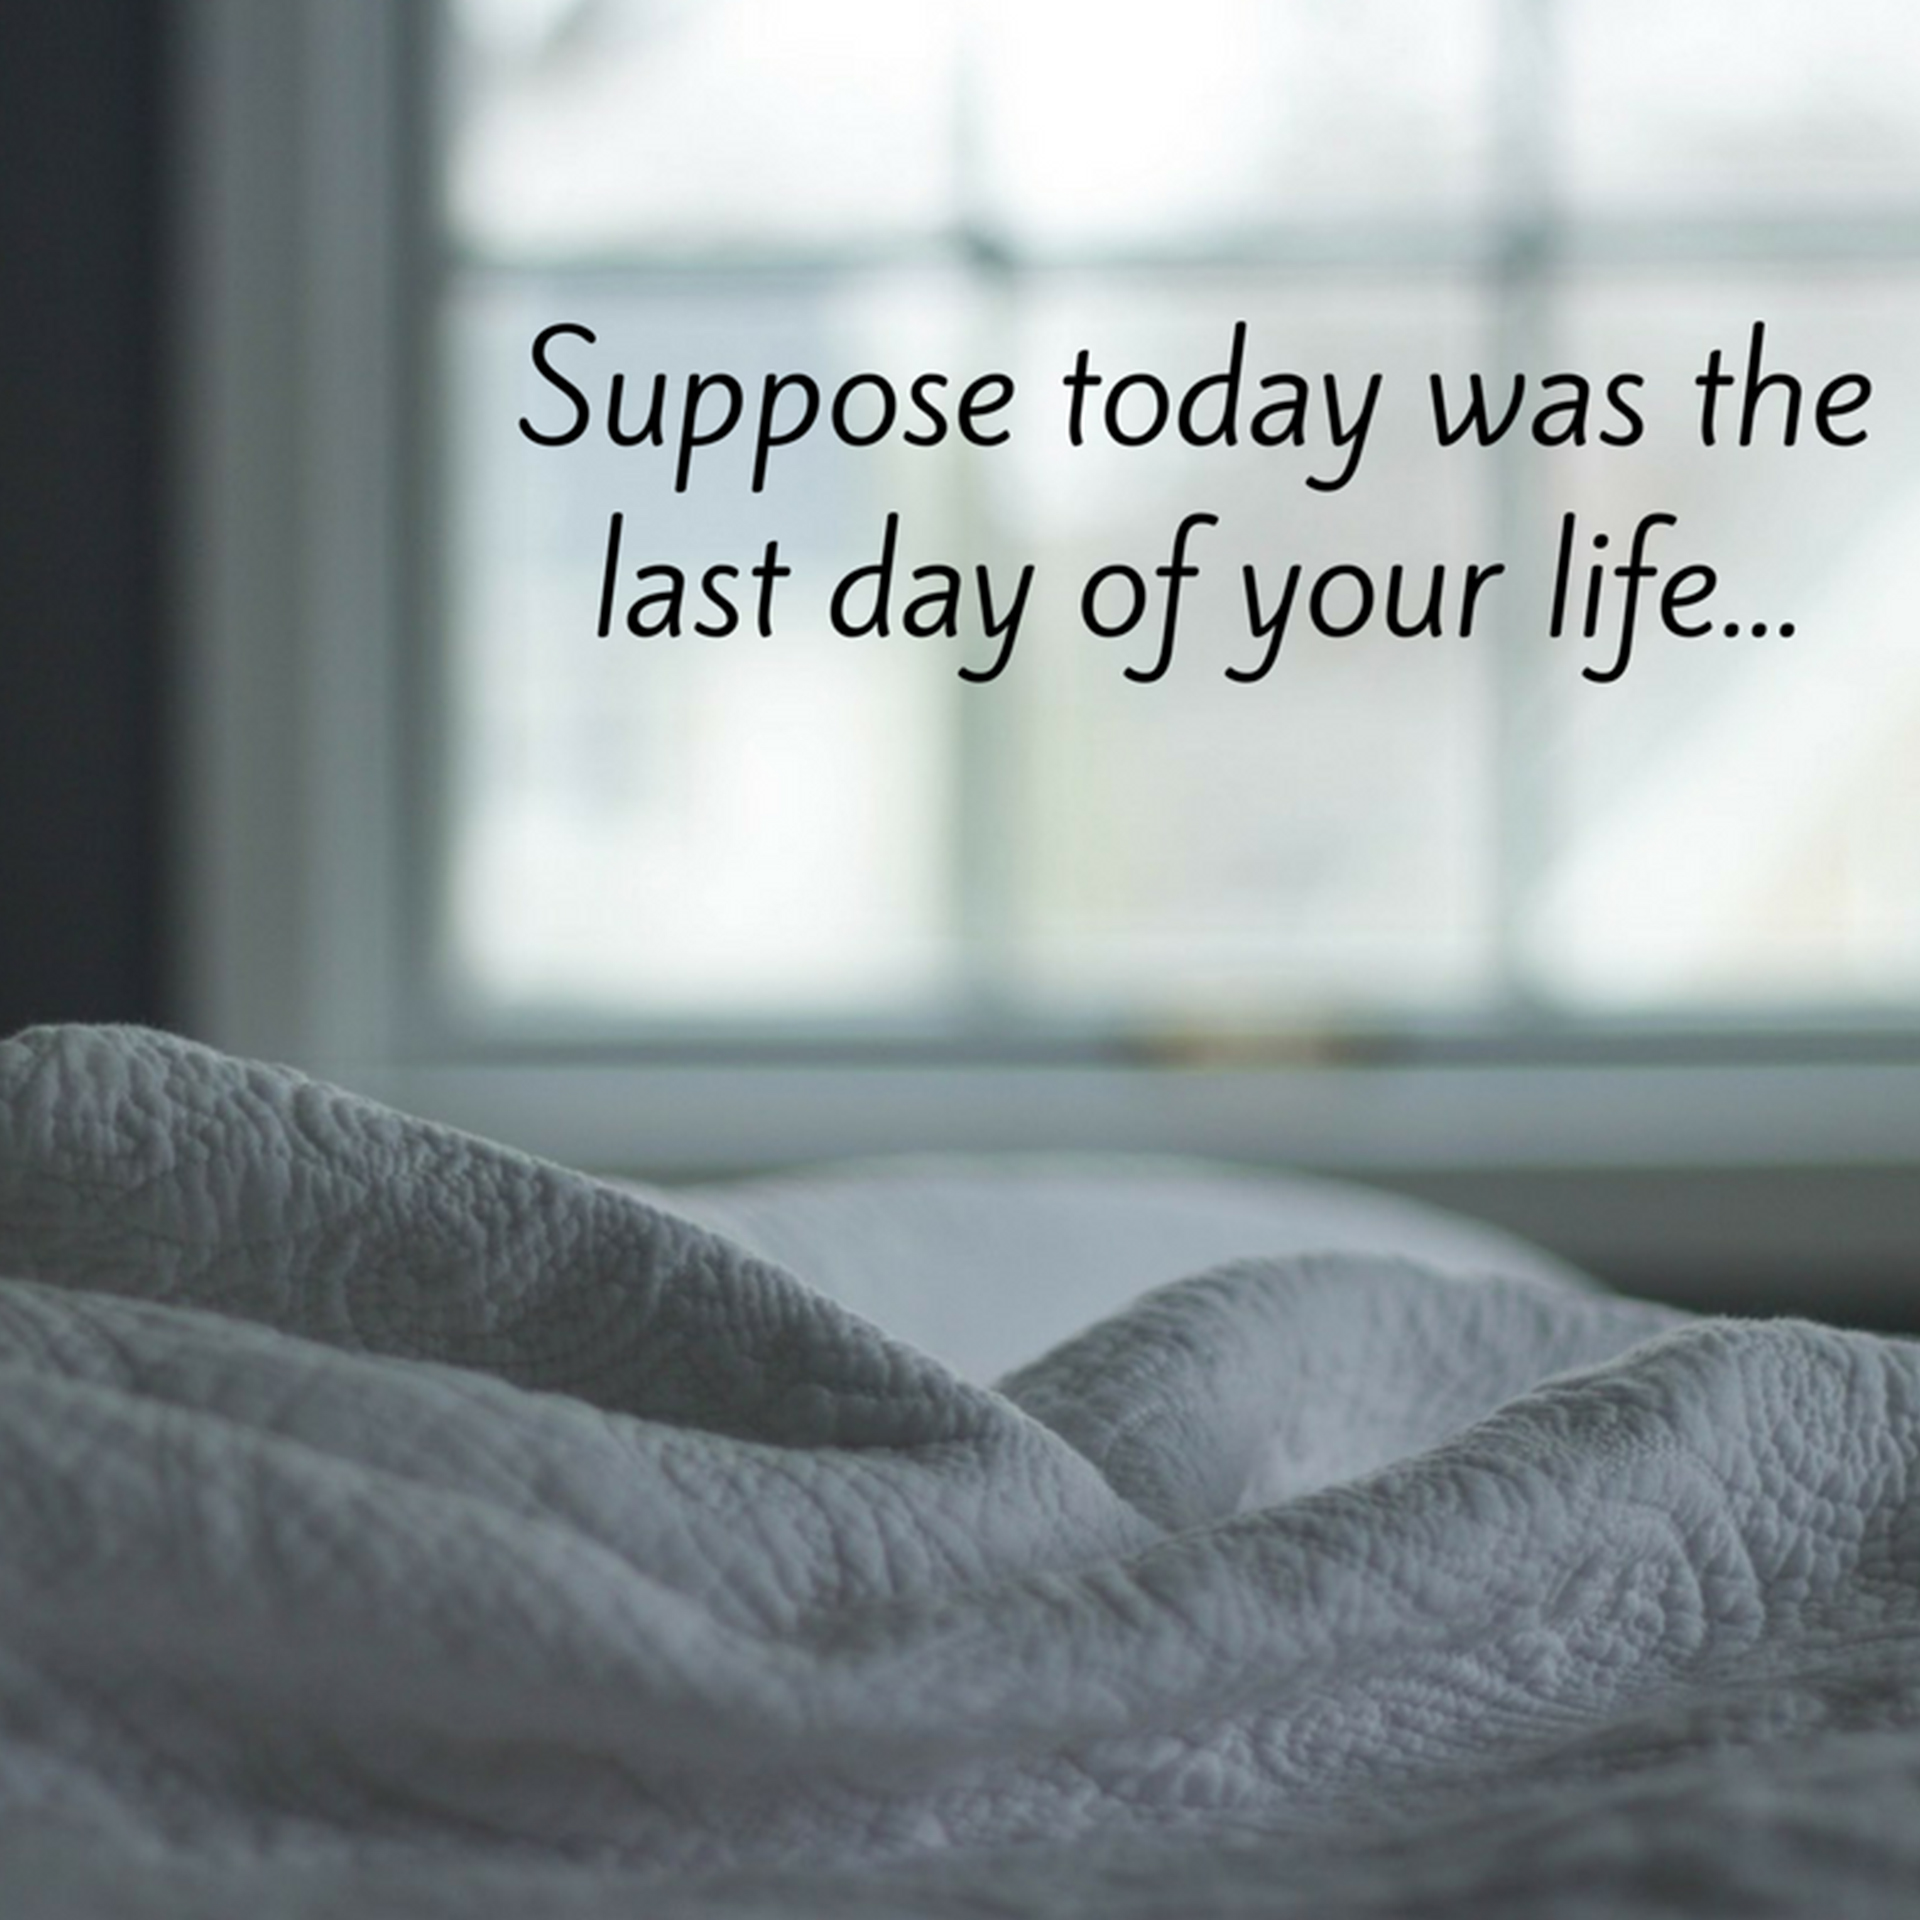 Suppose today was the last day of your life...